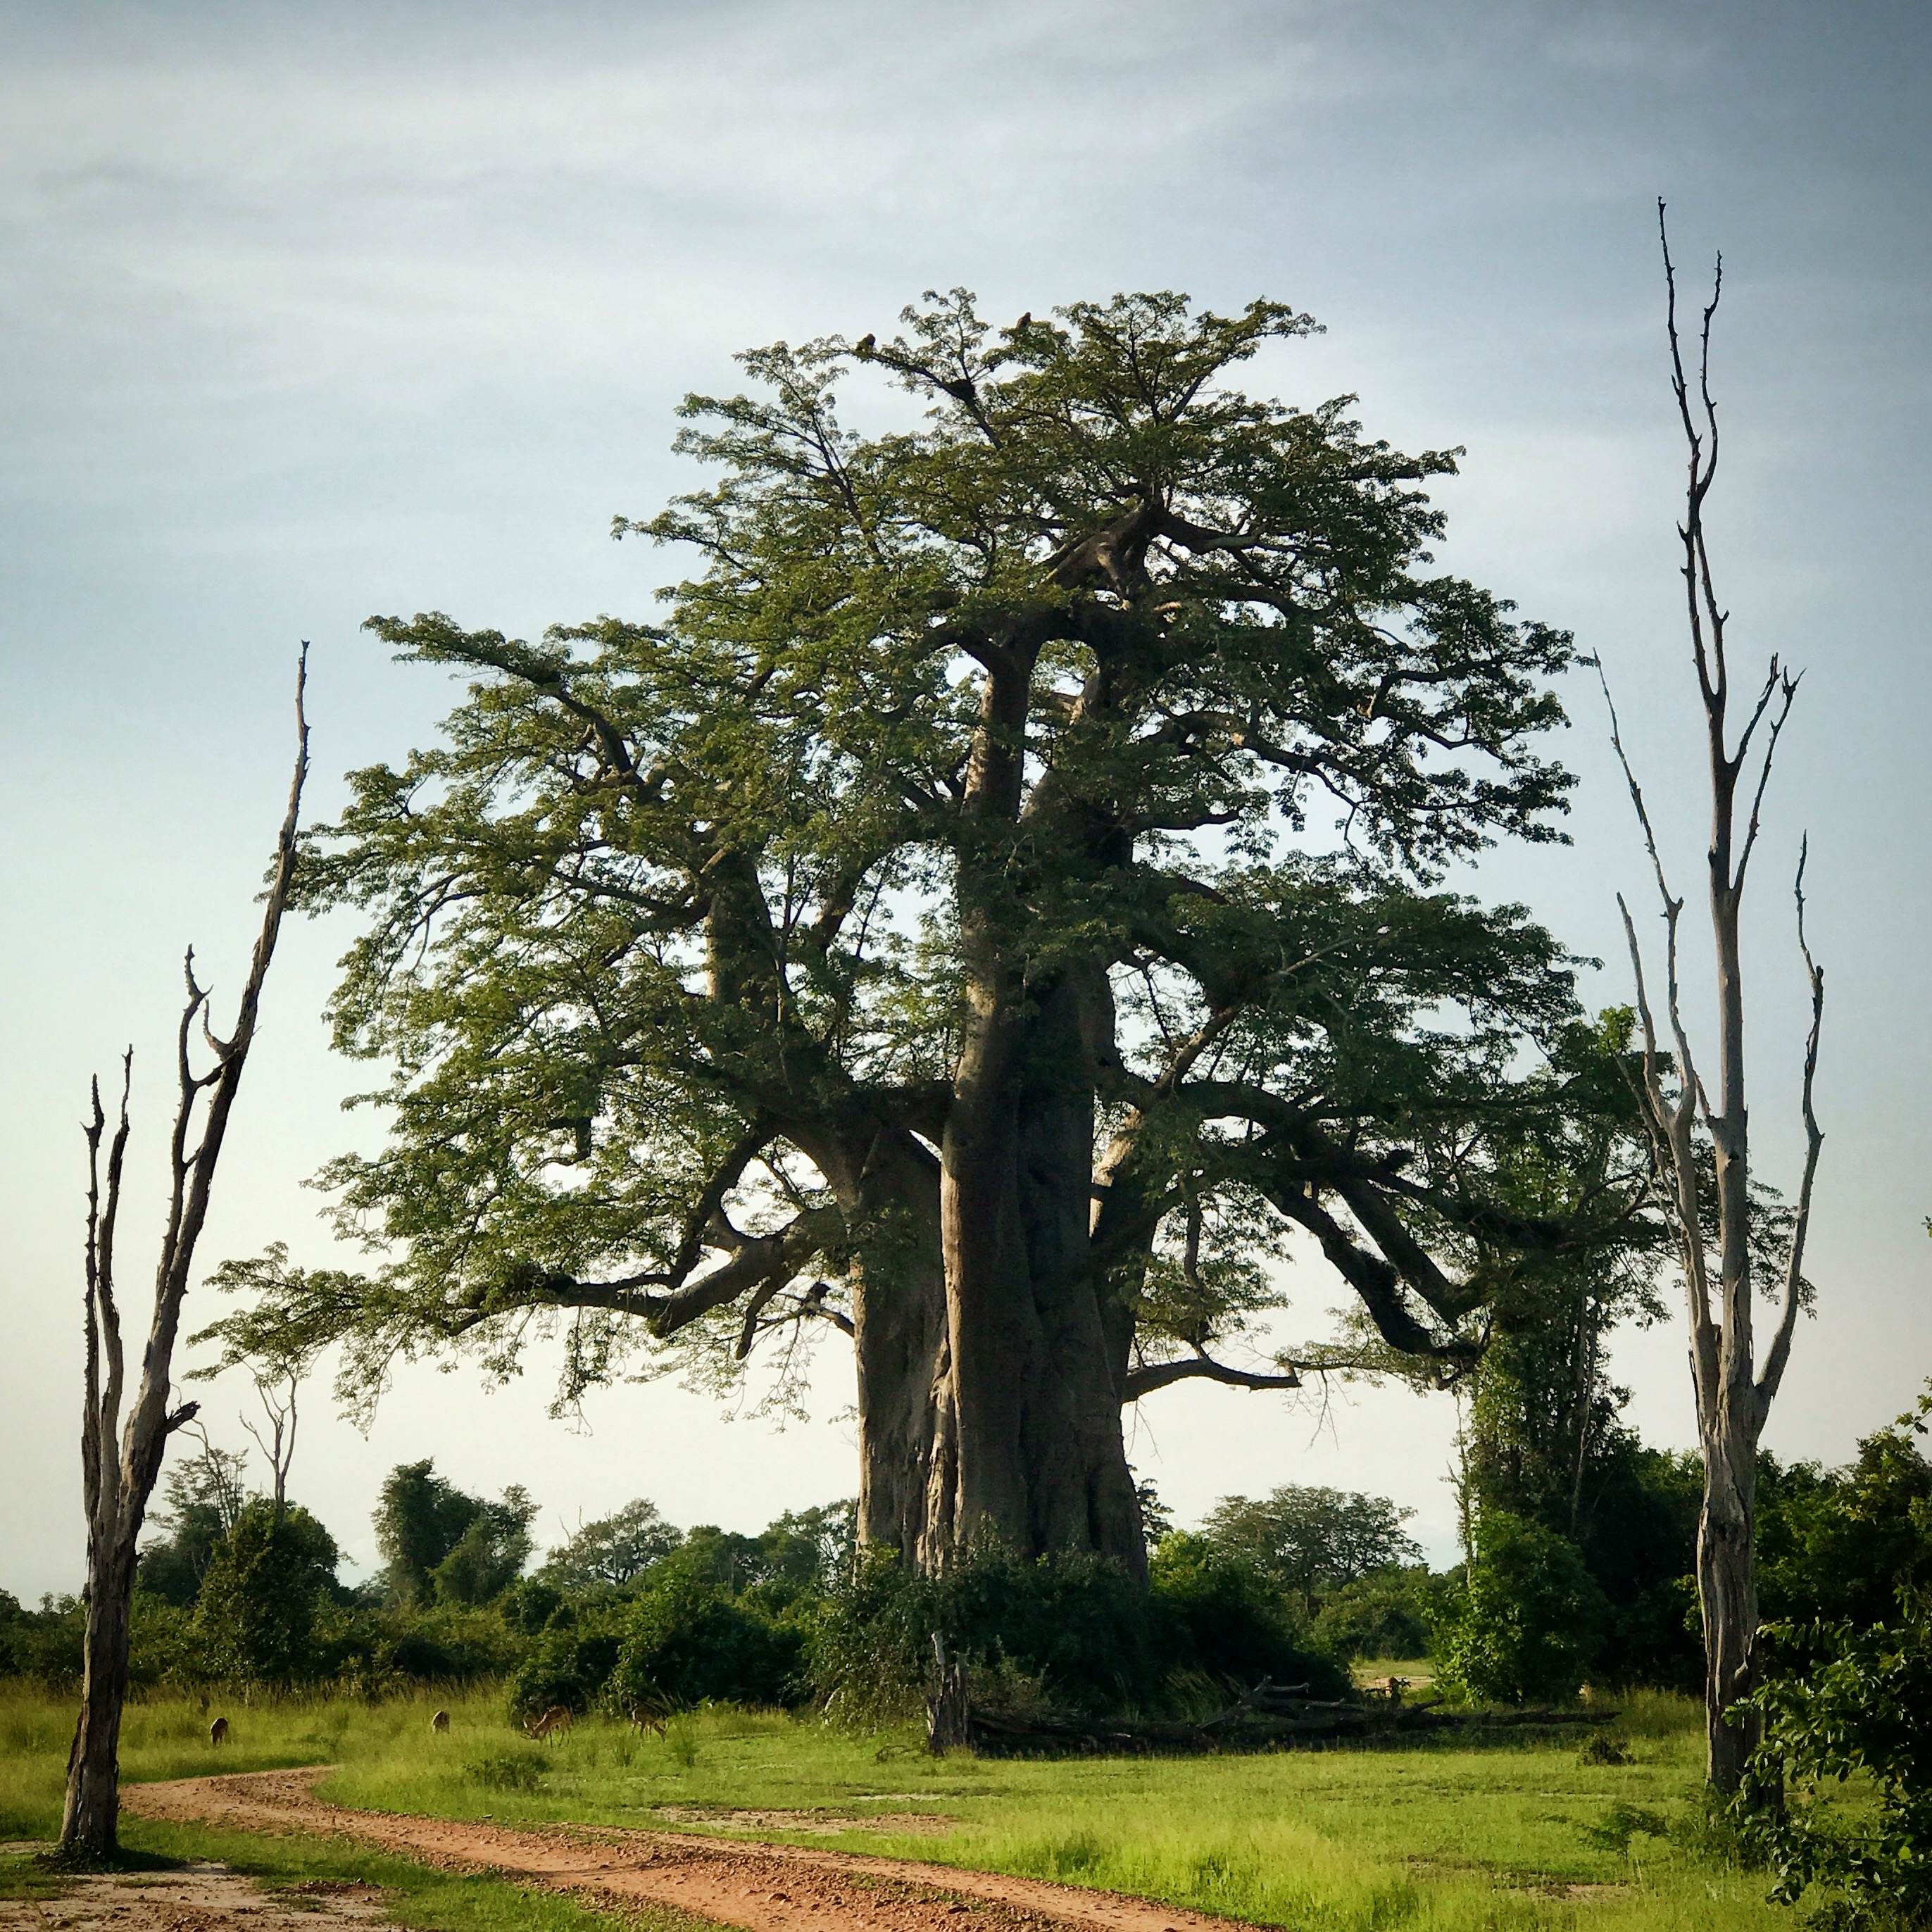 A baobab, with its own hardwood portal, in Zambia's South Luangwa National Park.